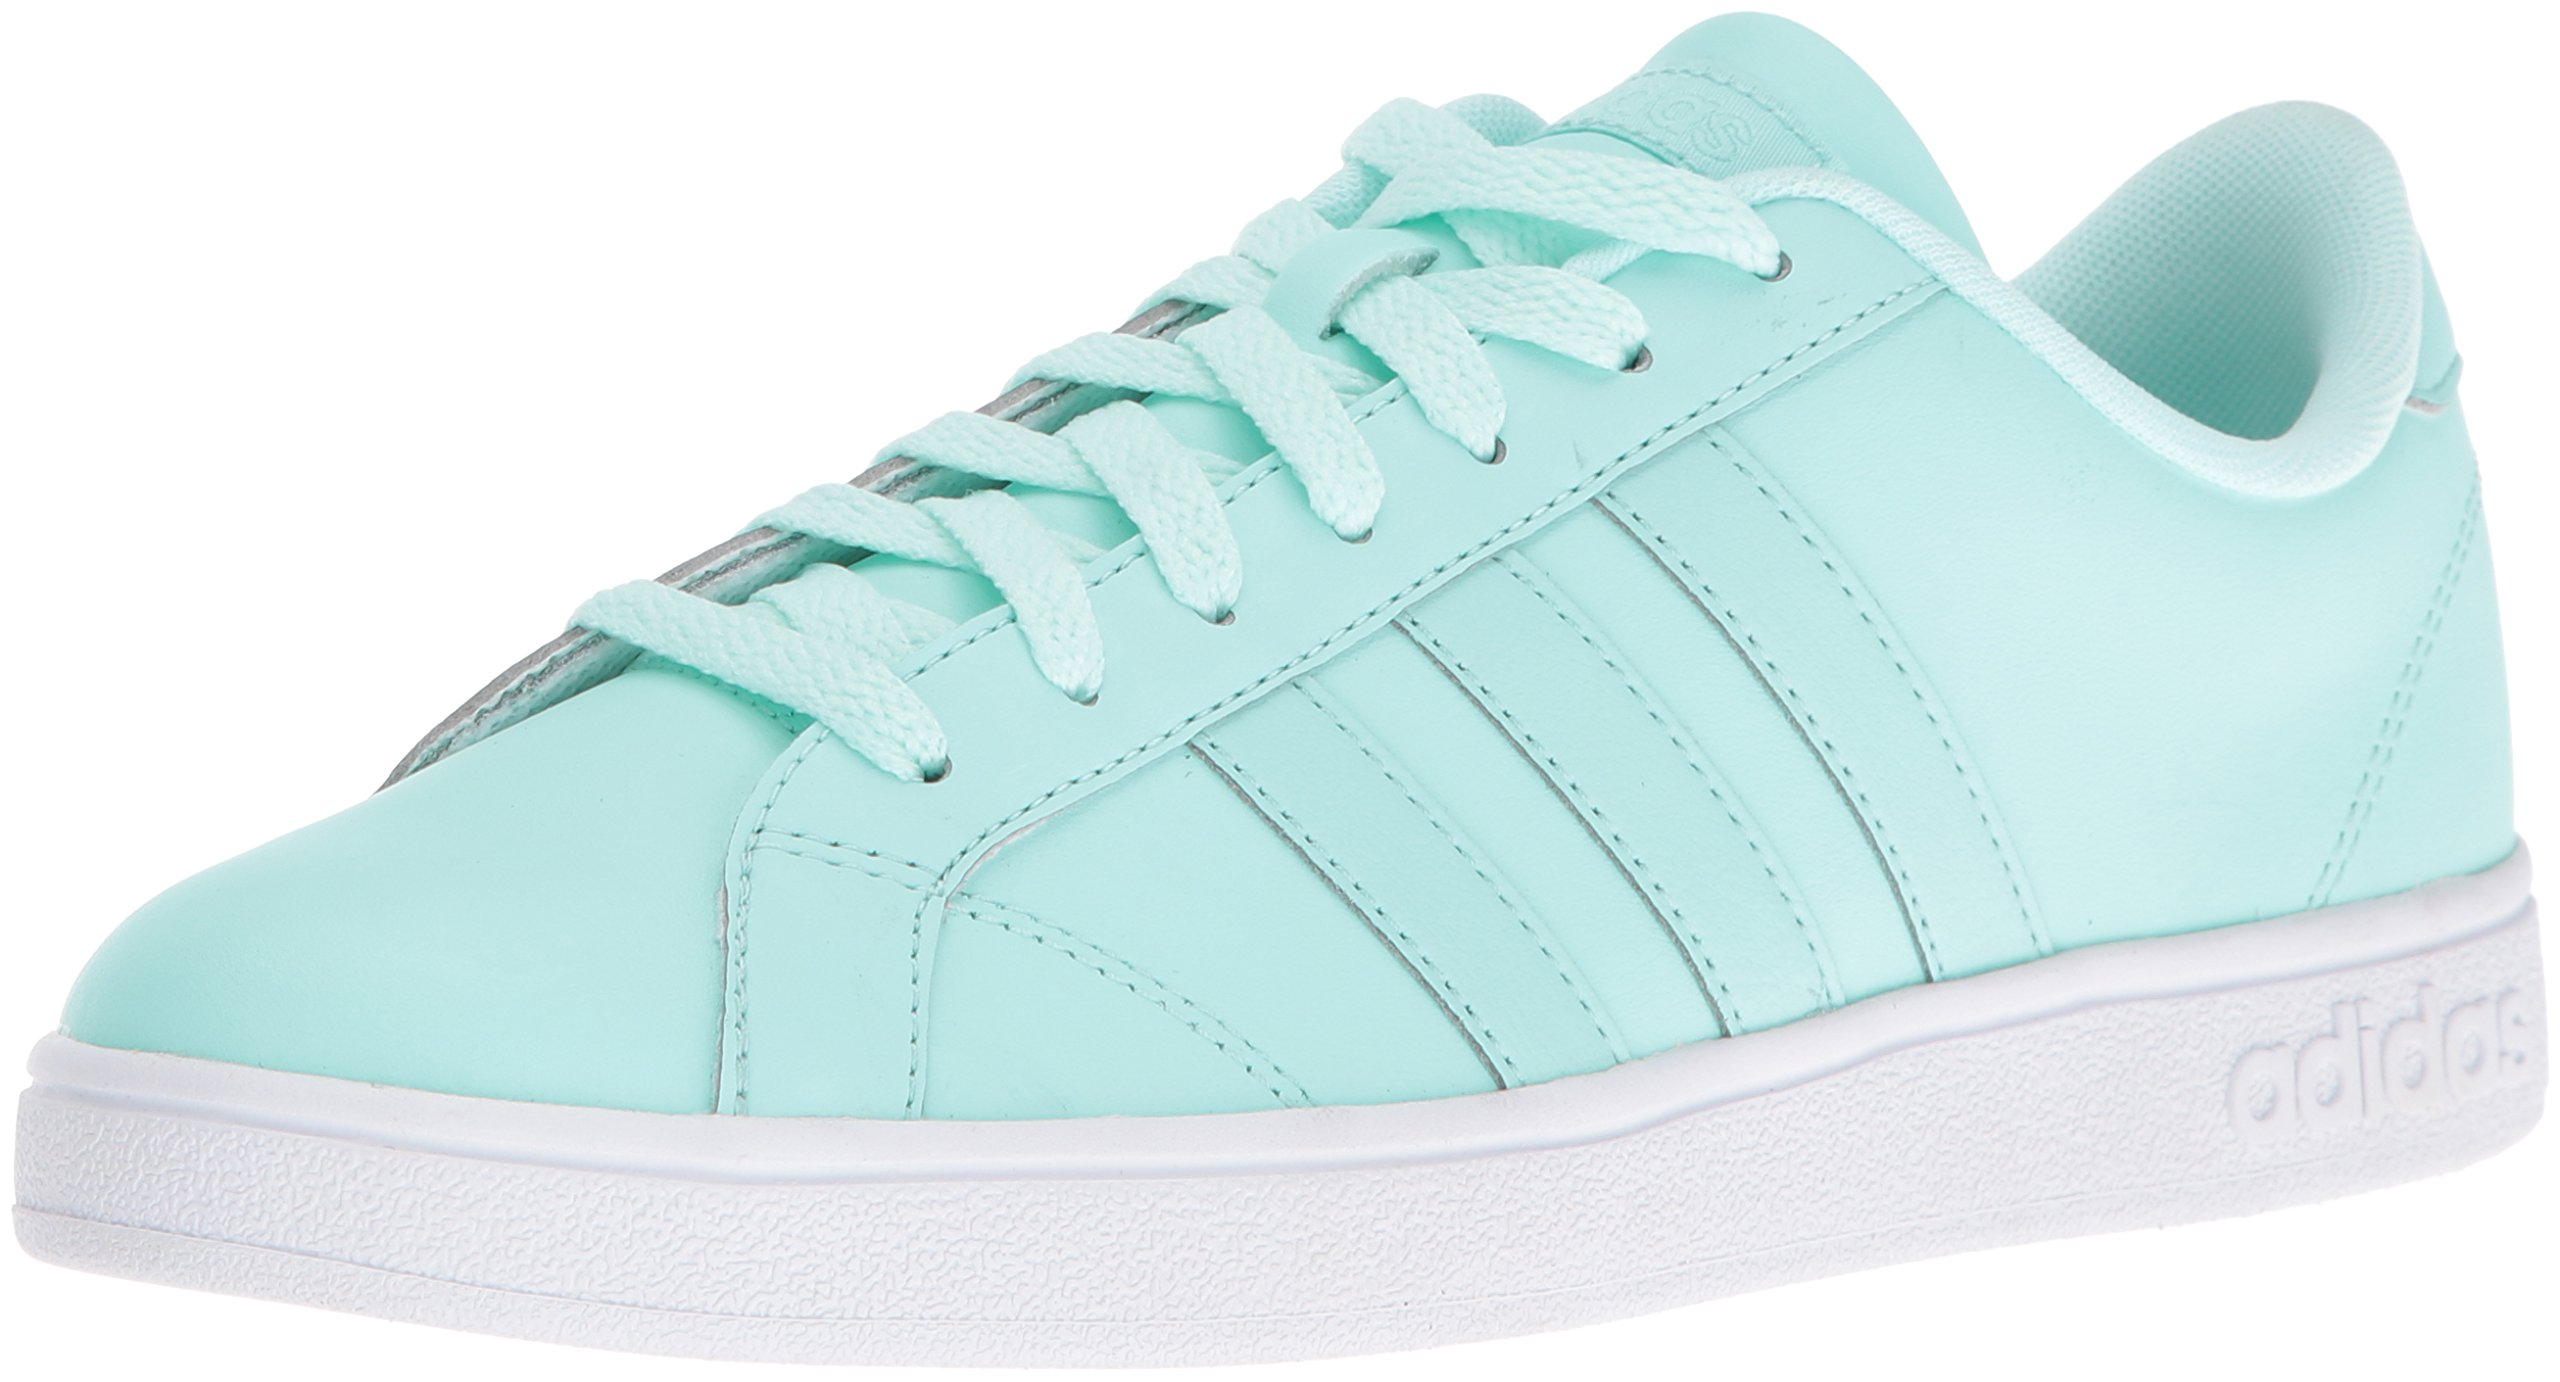 784e02d0847 Get Quotations · adidas Neo Women s Baseline W Fashion Sneaker